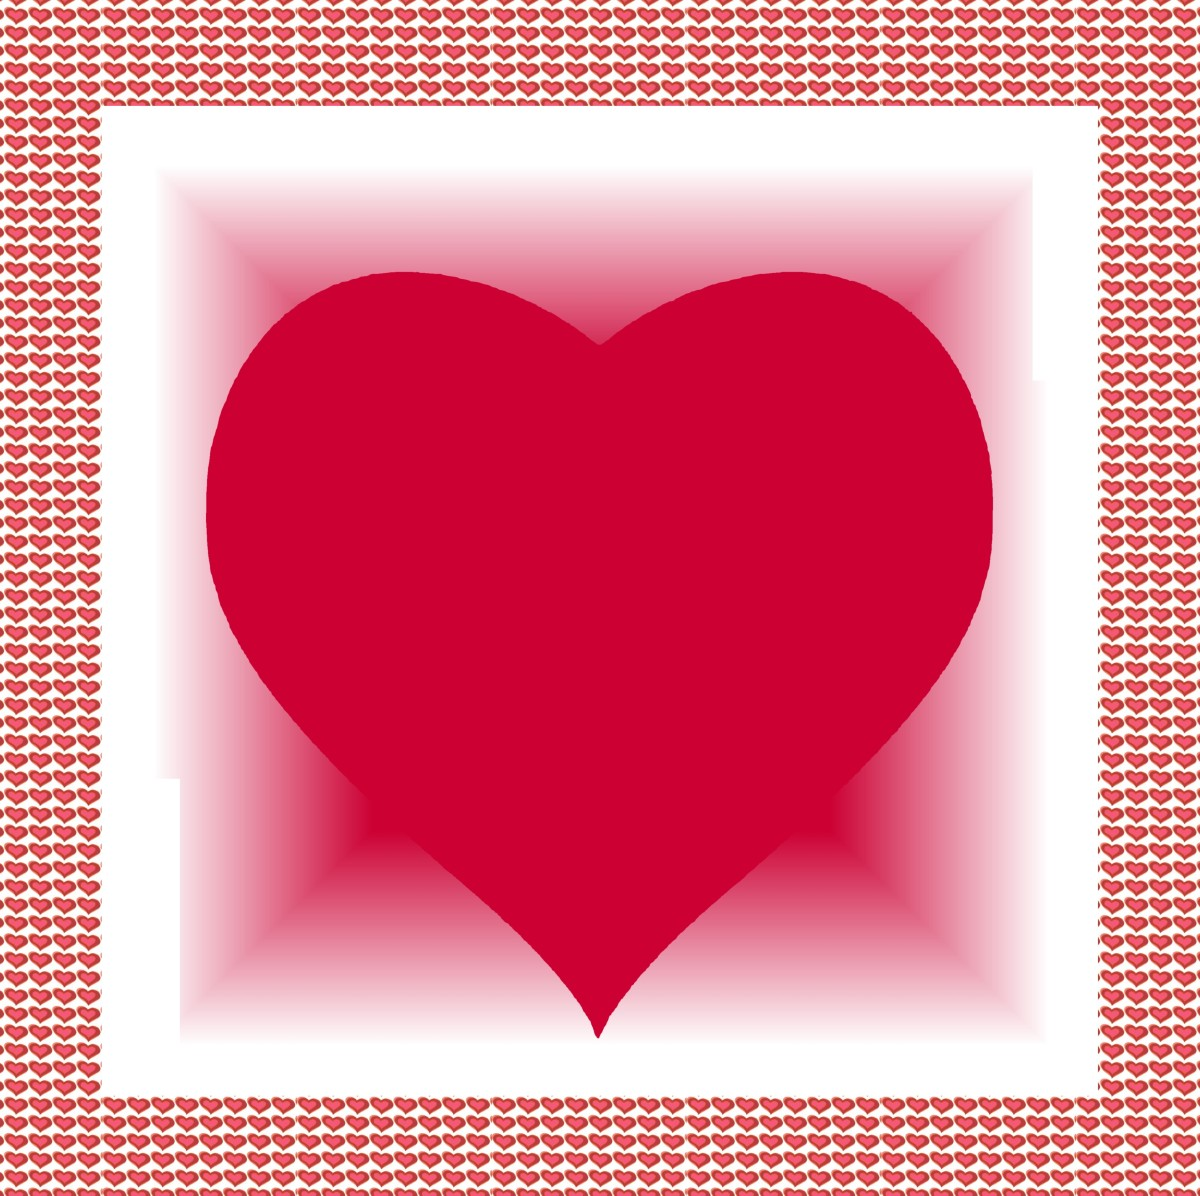 Free Image Use - Art of Hearts - Creativity and Design